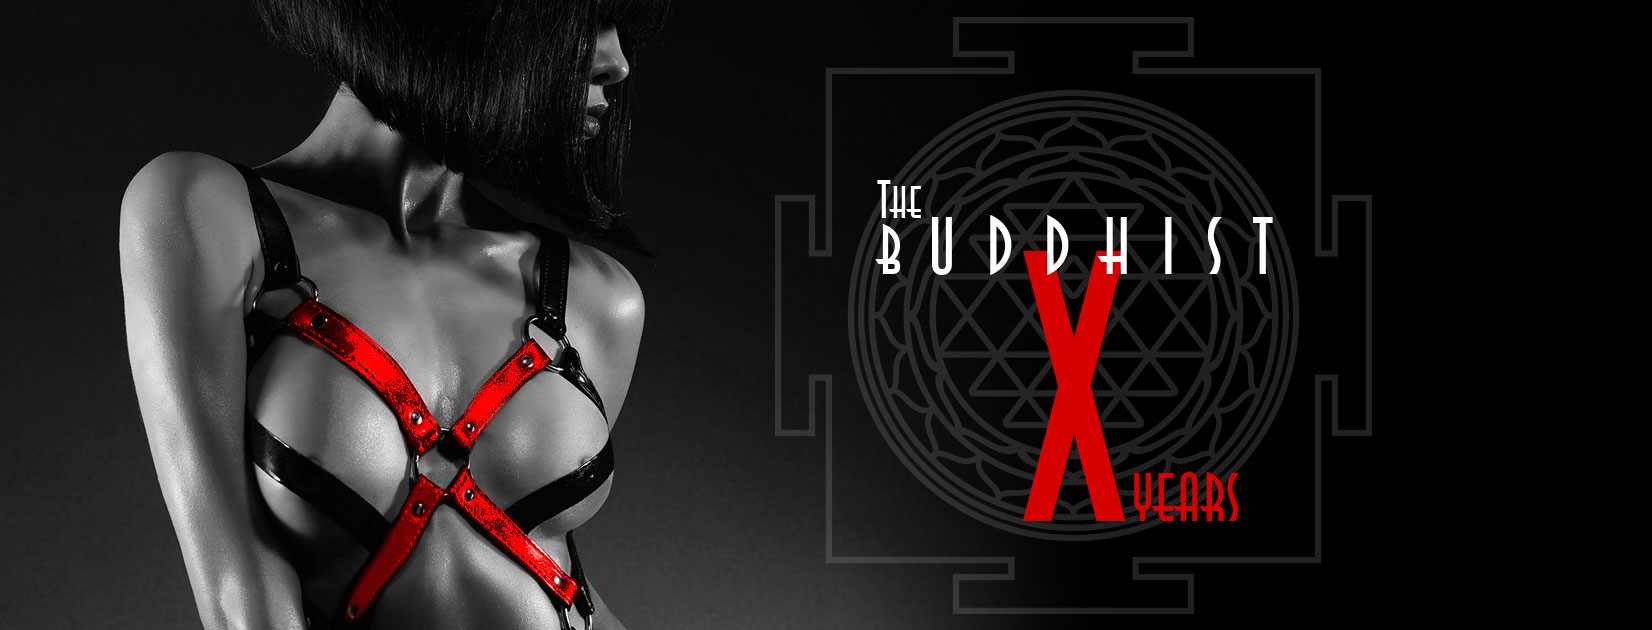 The Buddhist Strip Club in Bucharest